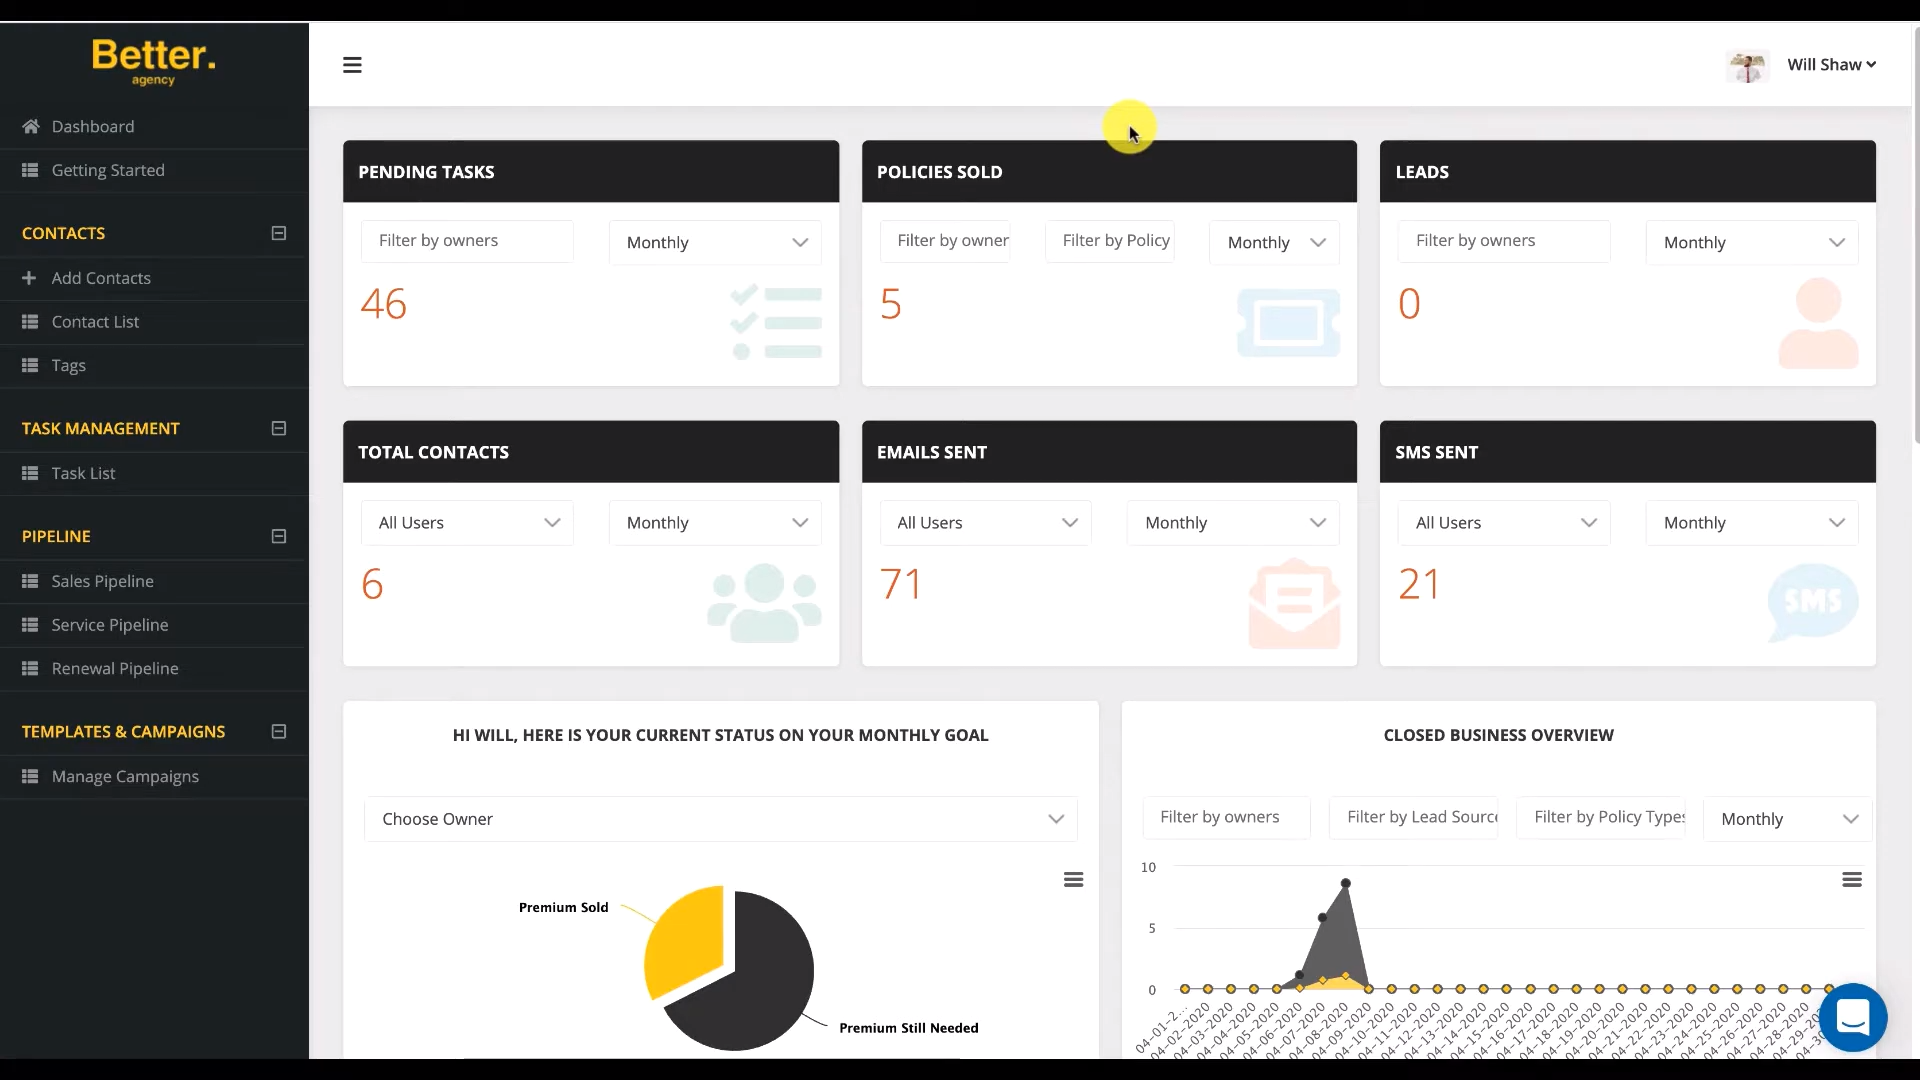 Better Agency dashboard